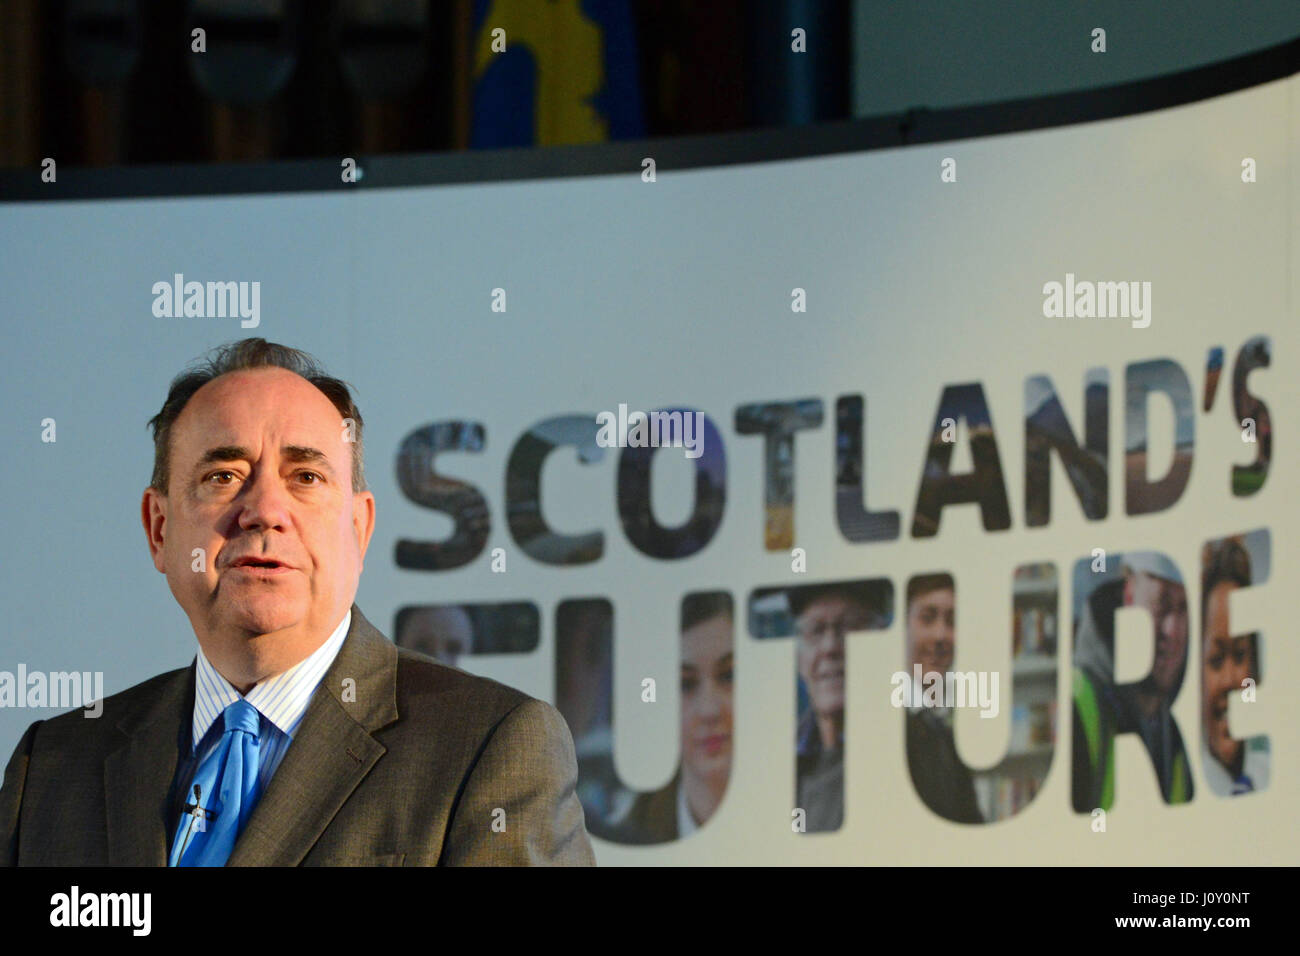 Scotland's First Minister Alex Salmond addresses a public meeting in Arbroath in front of a Scotland's Future - Stock Image